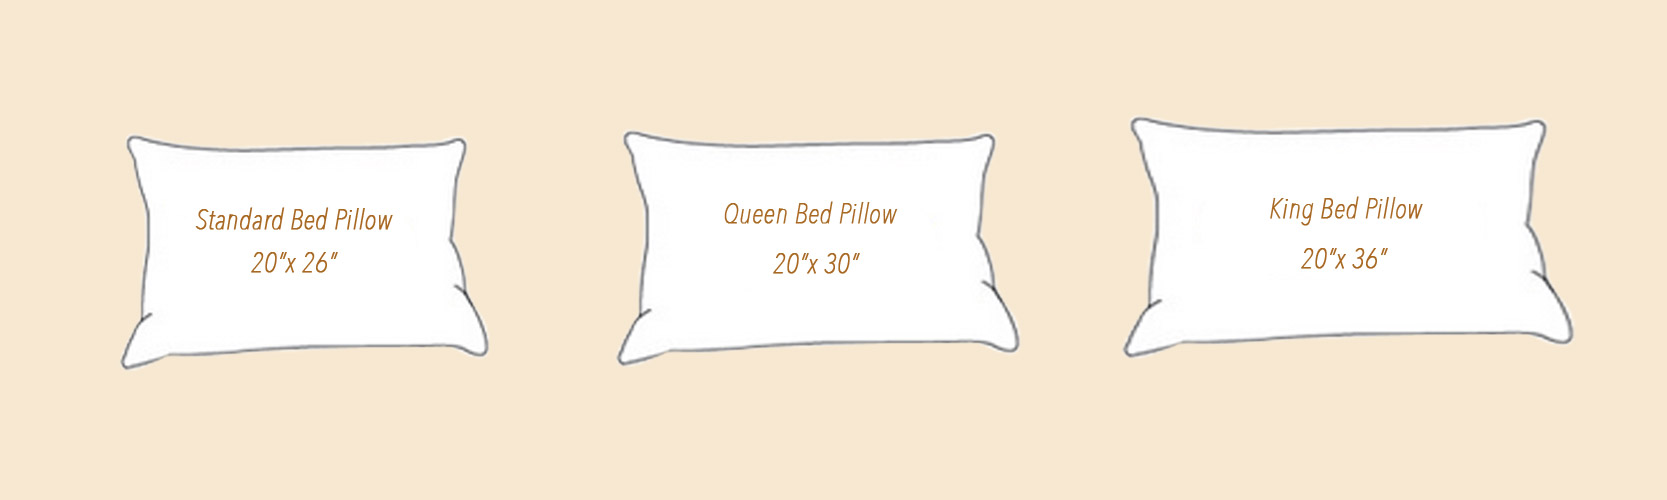 Blog Pillow Sizes Bed Pillow Sizes